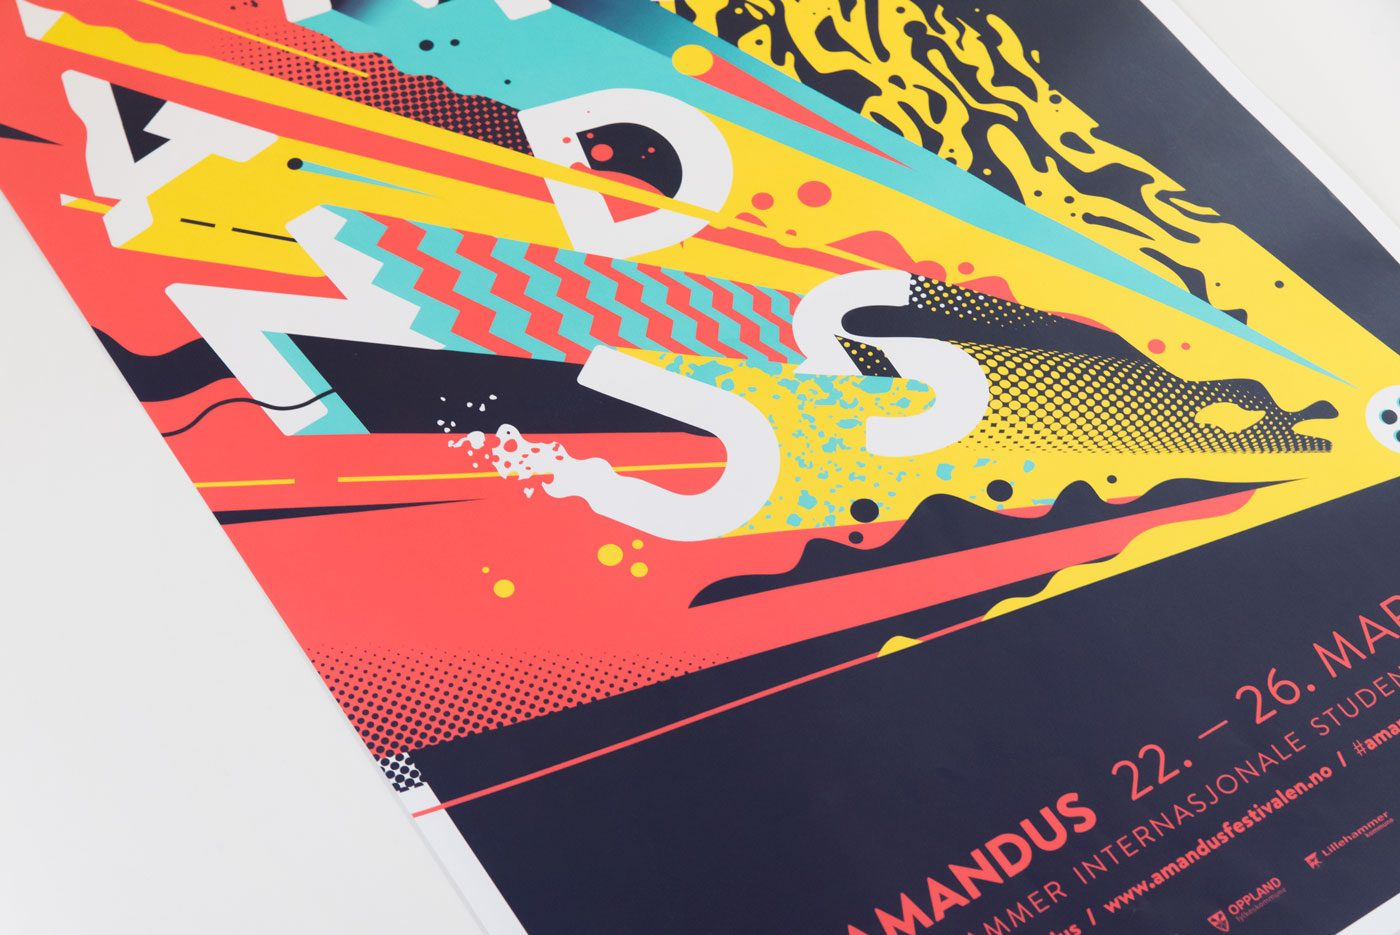 Amandus Film Festival Poster Design by upstruct